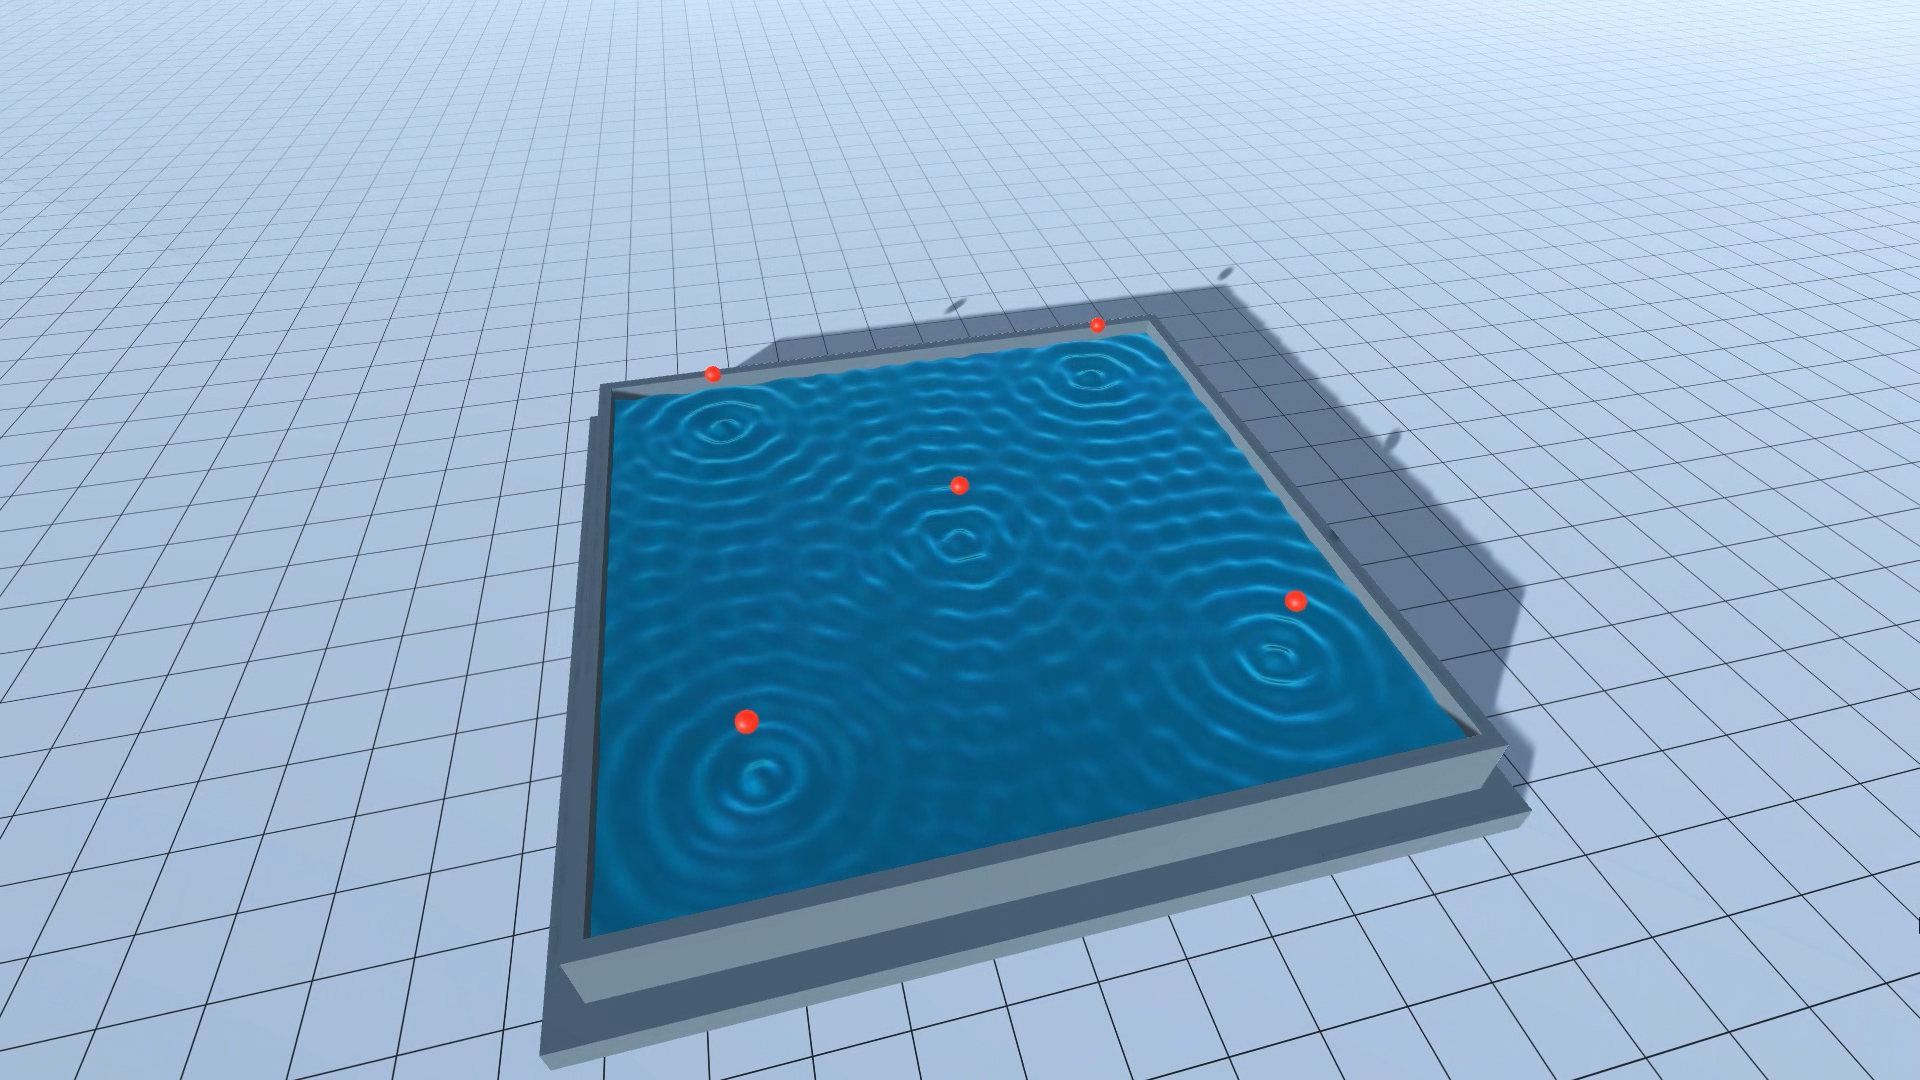 konsfik-procedural-water-surface-unity3d-snapshot-3